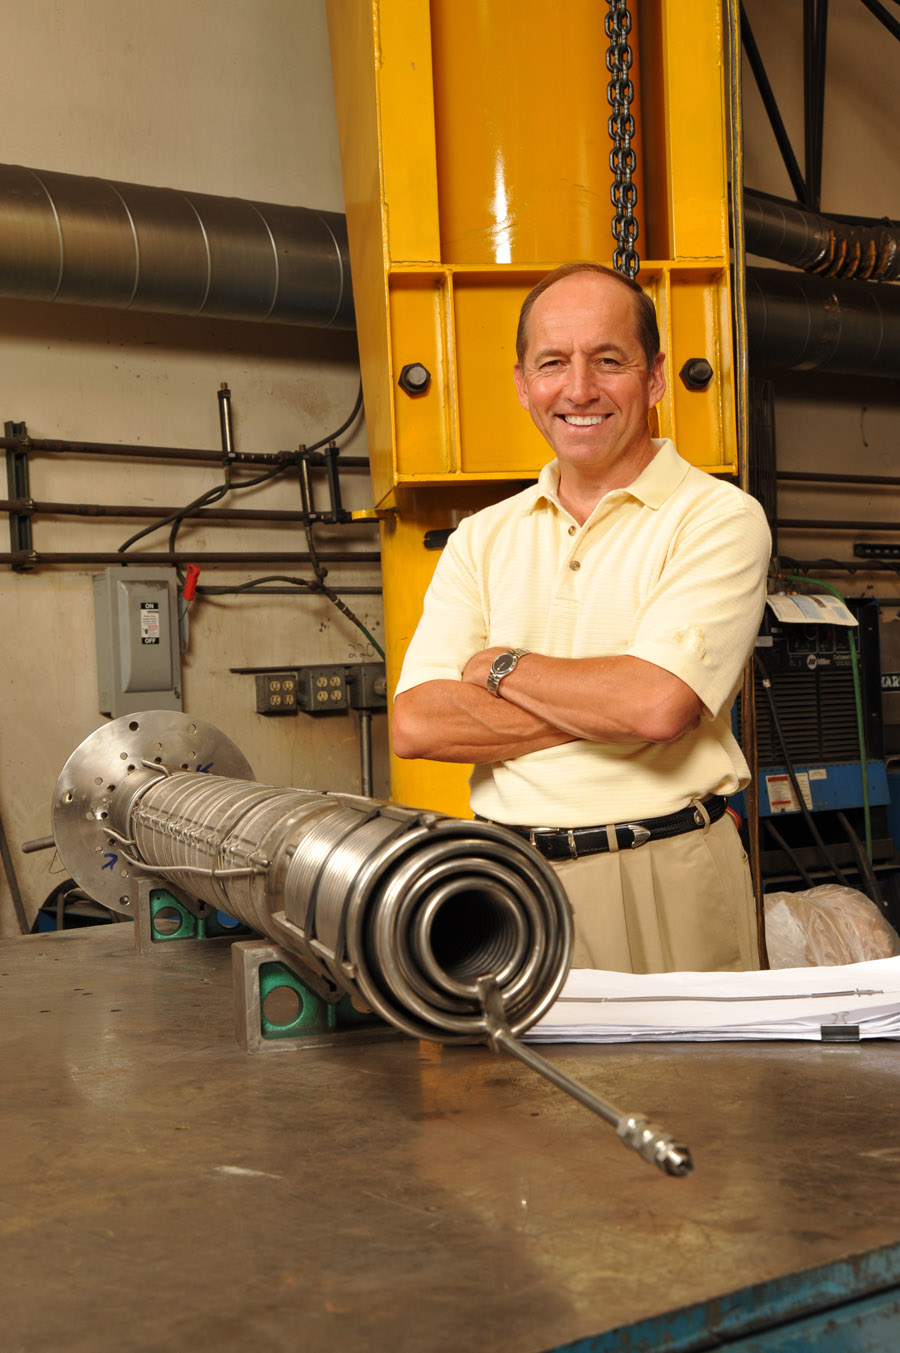 Mike Kartsonis, founder of dynamic fabrication